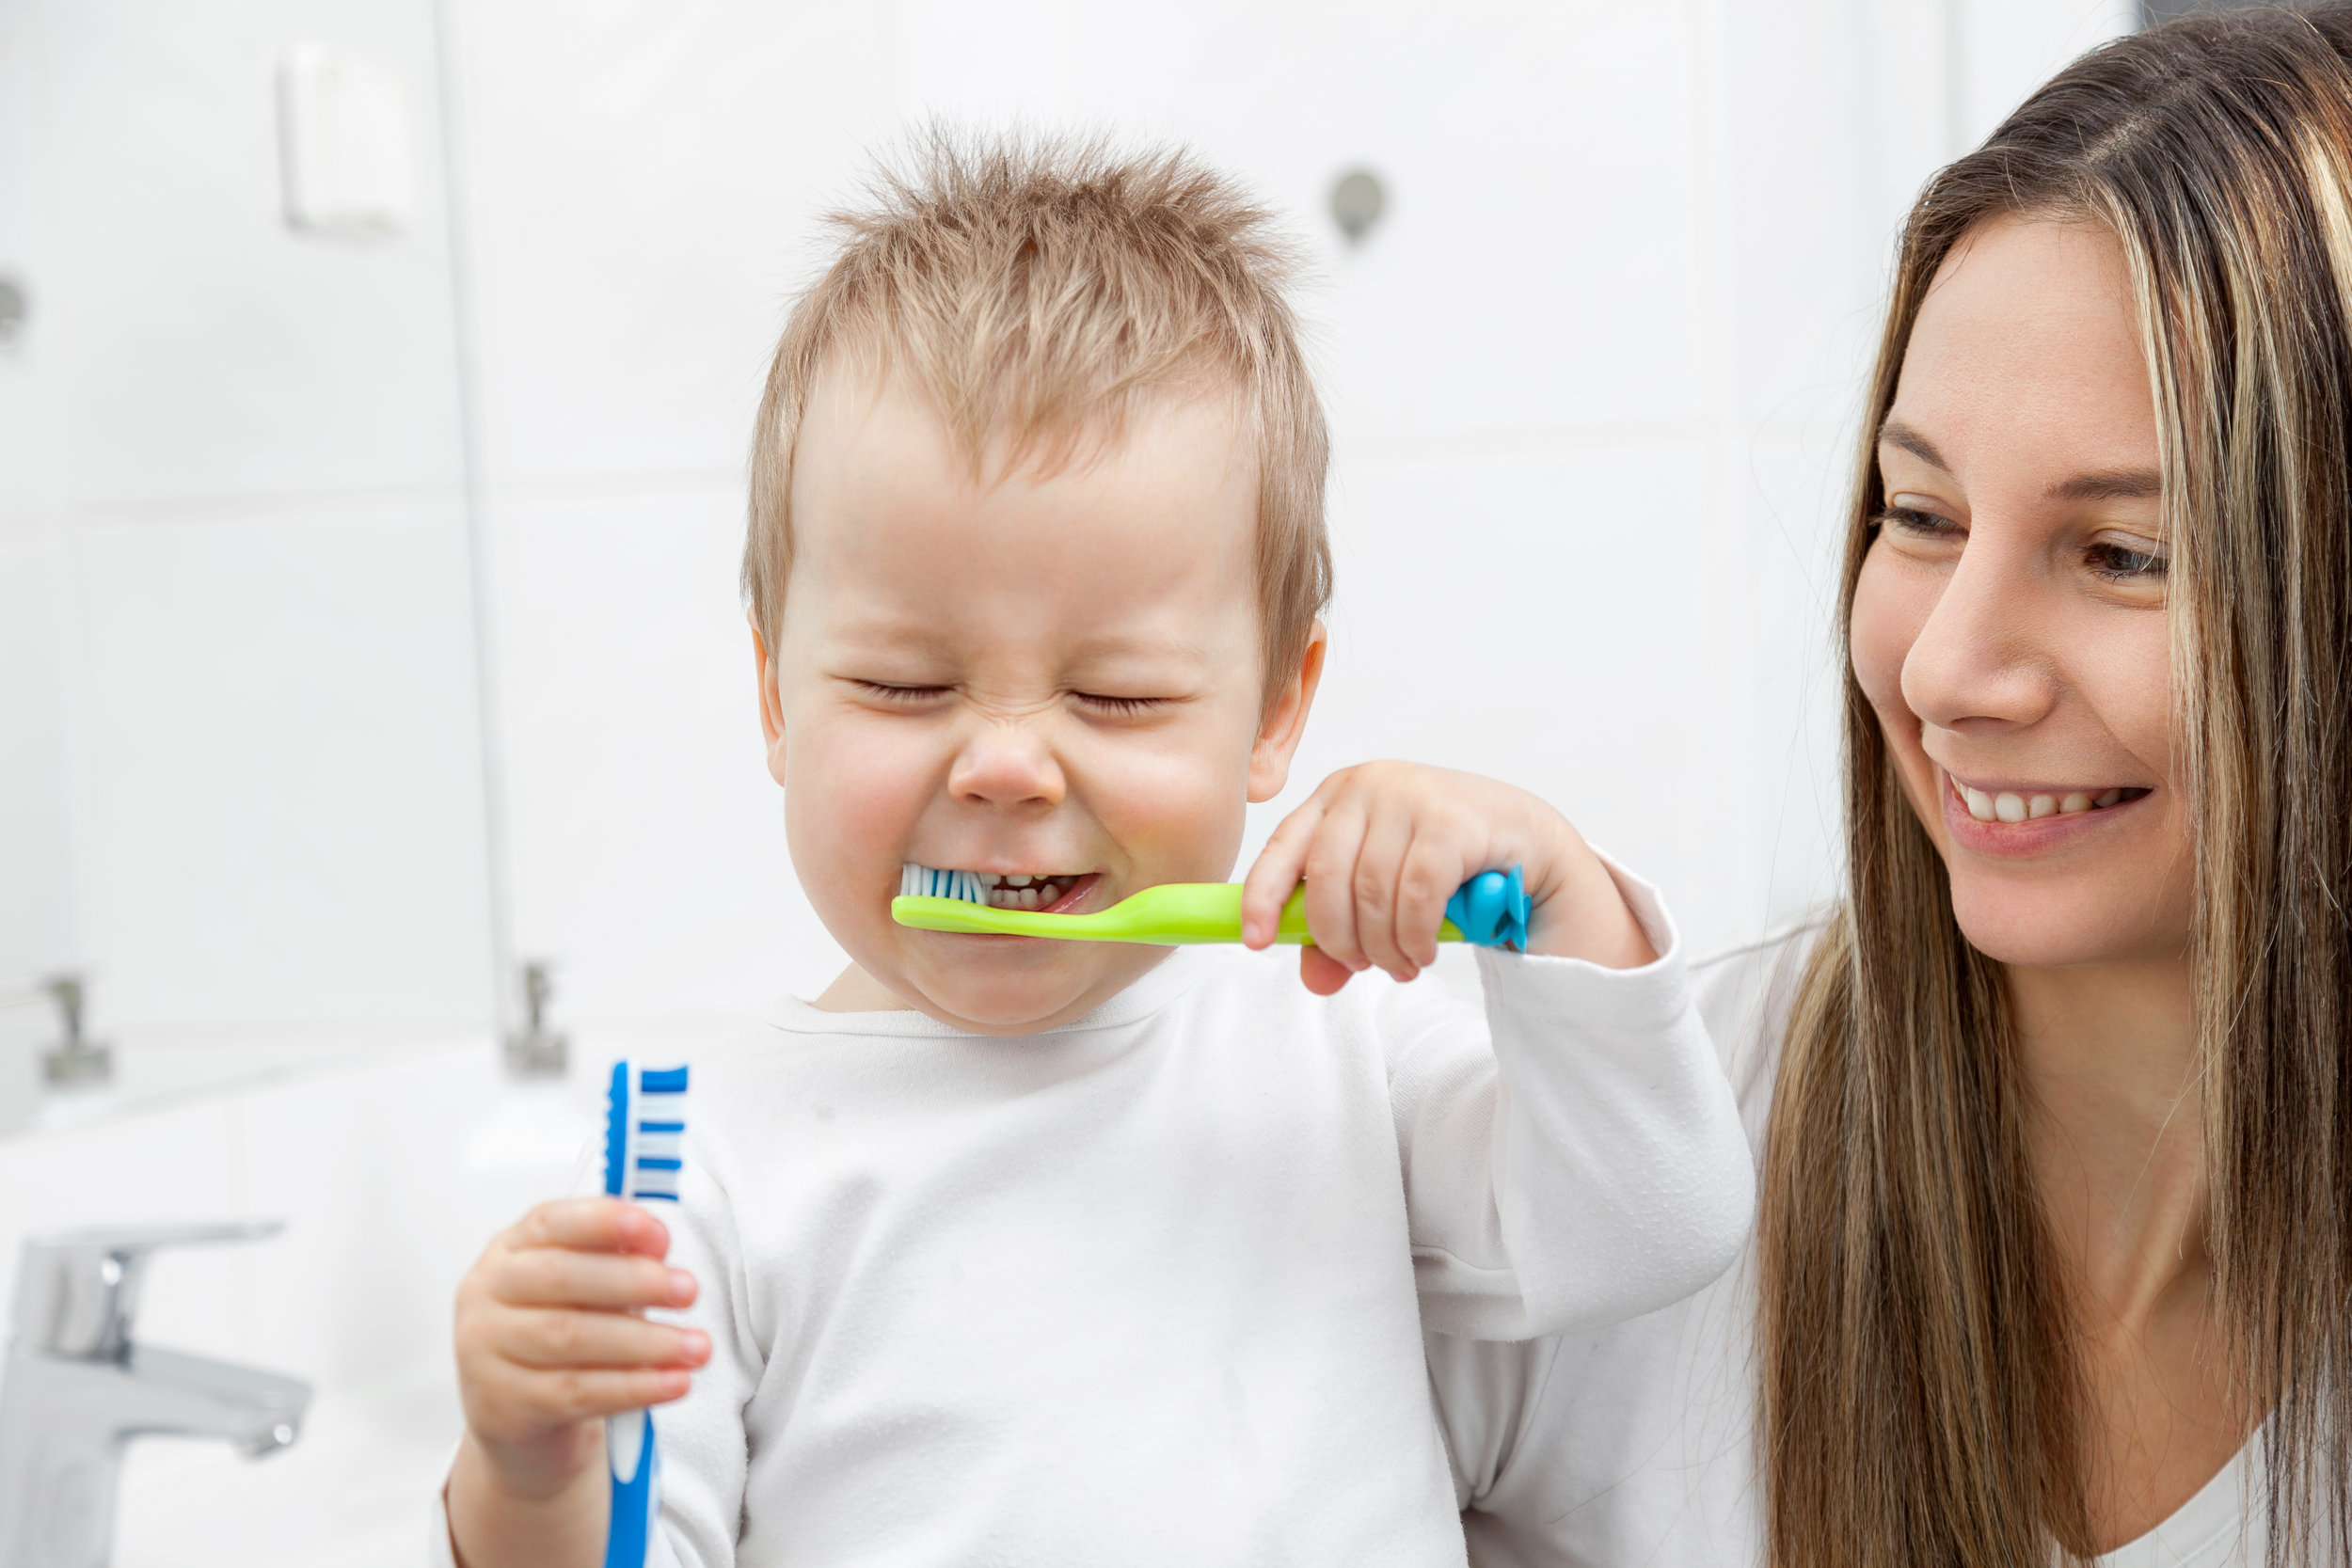 Baby Brushing Teeth.jpg